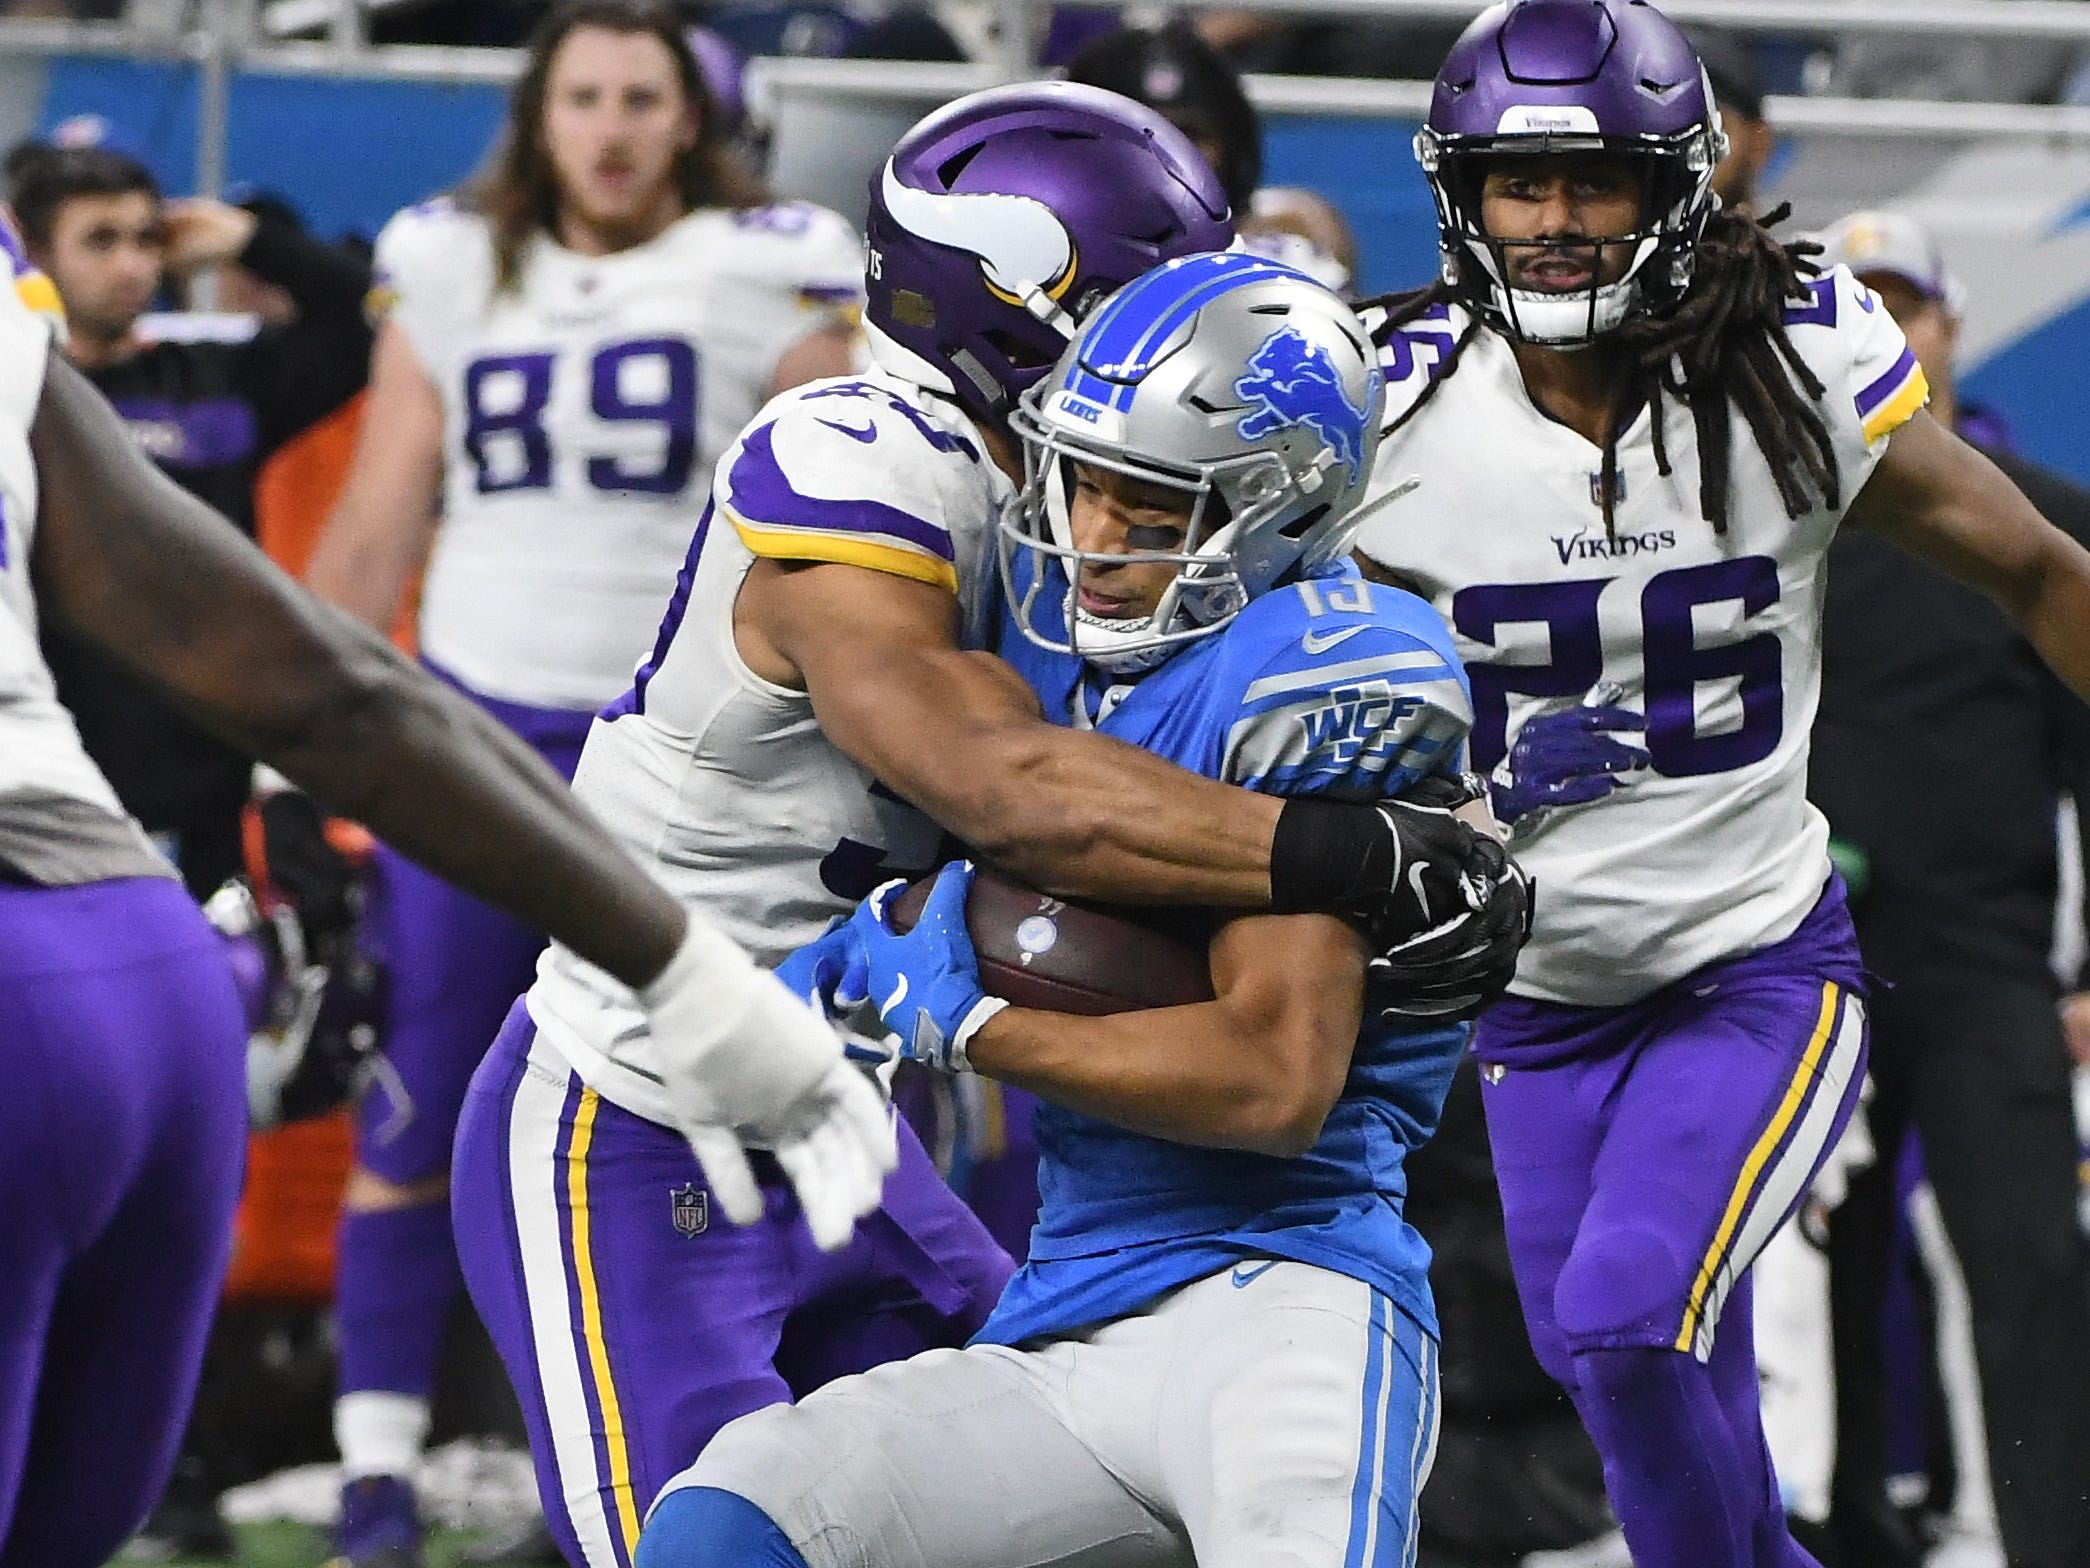 WR TJ Jones: Following the Golden Tate trade, Jones was the biggest beneficiary, seeing his playing time quadruple. But he did little to take advantage of the opportunity until catching a pair of touchdowns in the season finale. Over the full 10-game stretch, he caught 17 passes for 180 yards, while offering modest contributions in the return game. Grade: D+